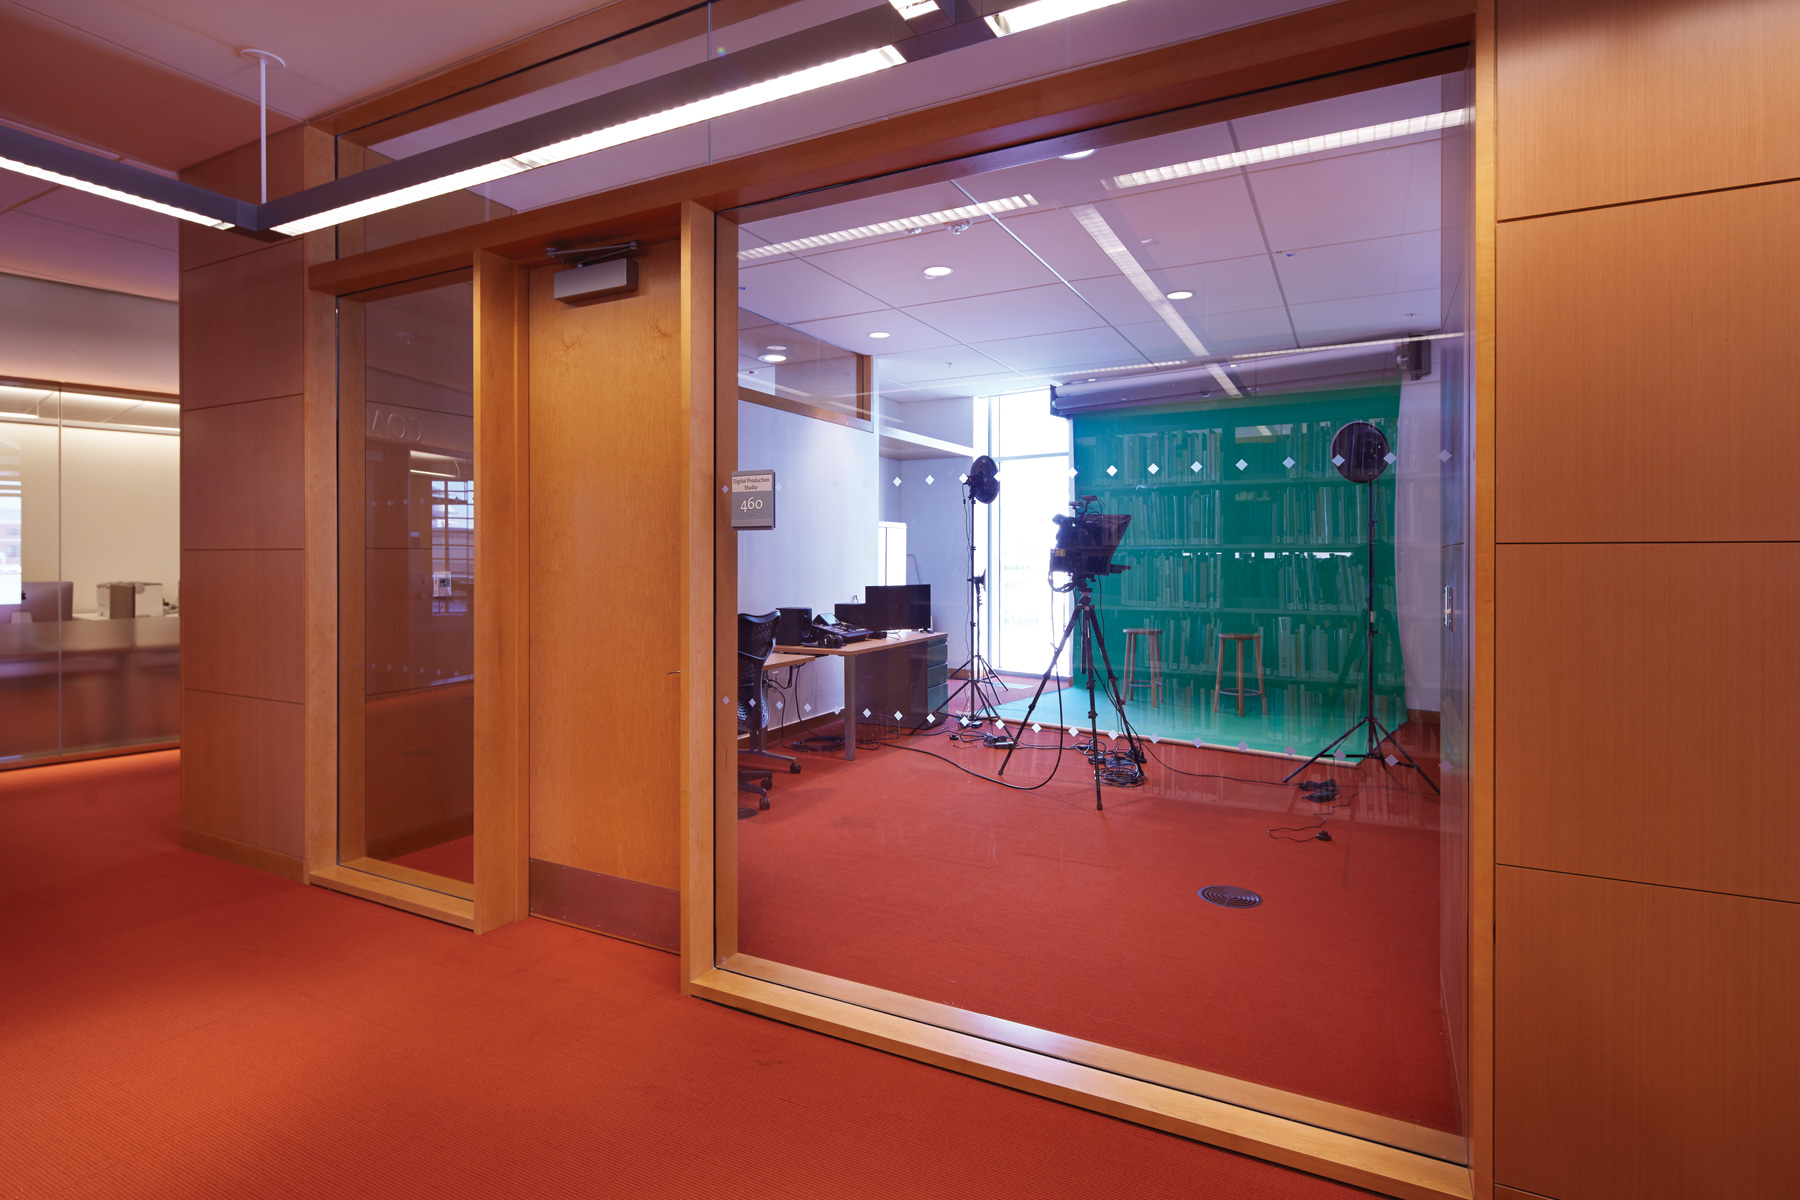 The digital production room uses technology to encourage creation.